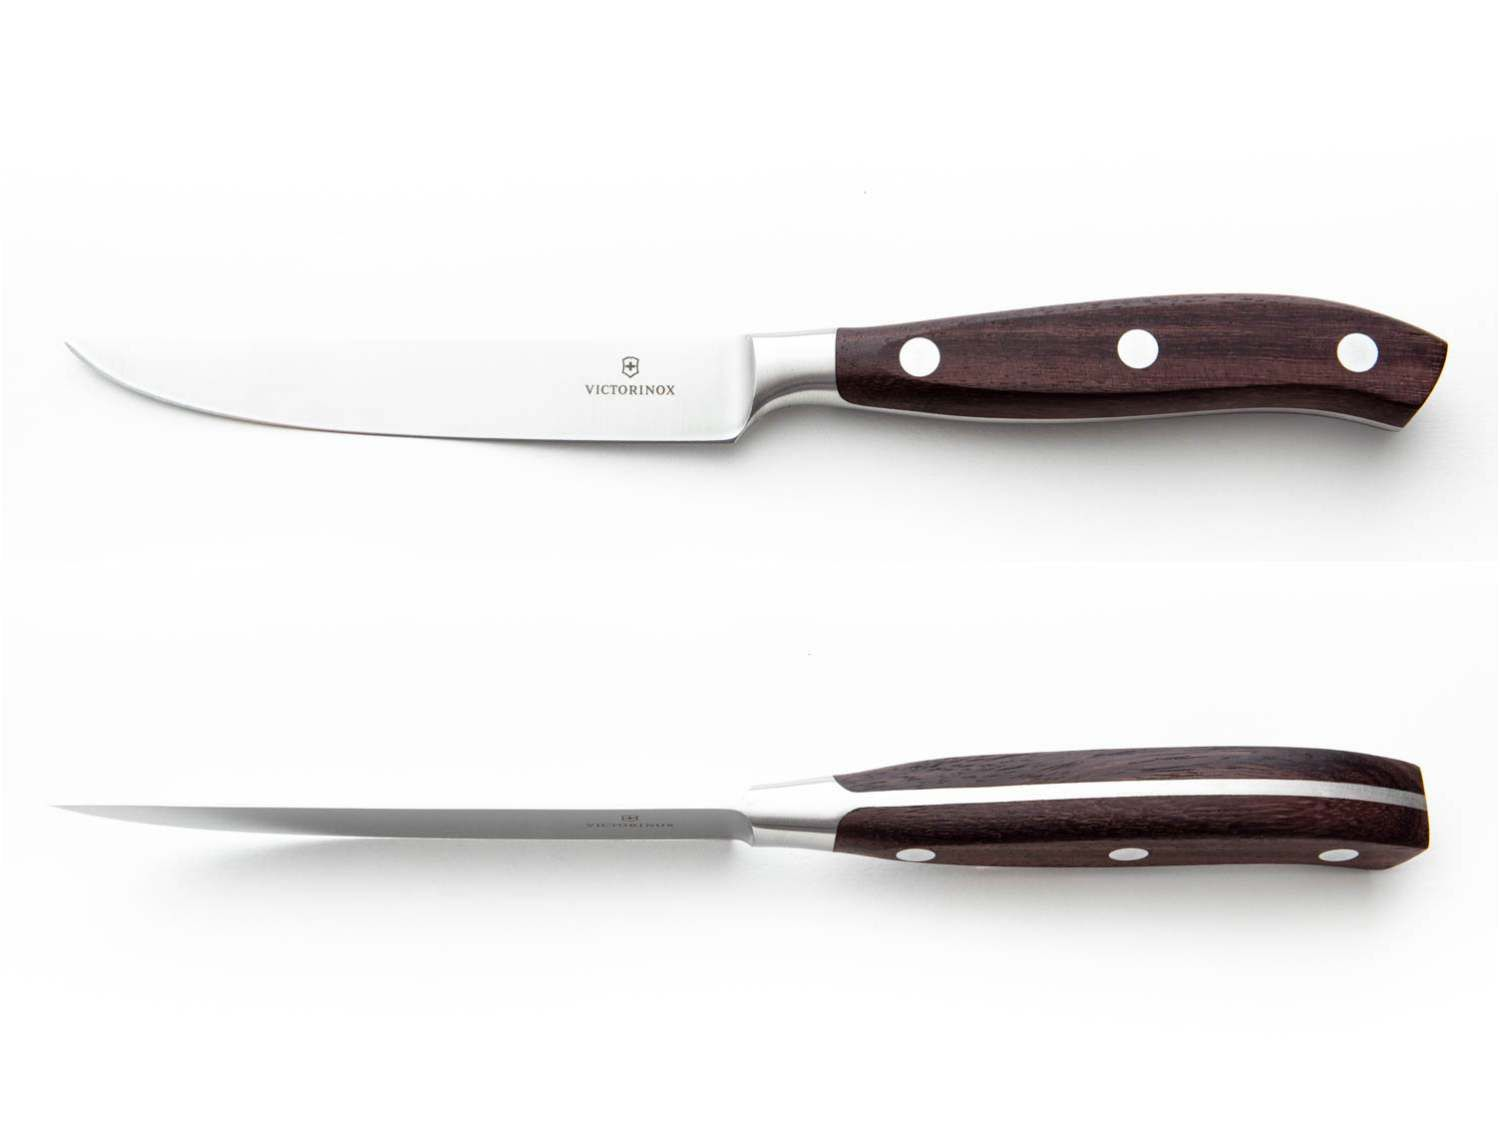 Side and overhead view of the Victorinox Grand Maître steak knife.